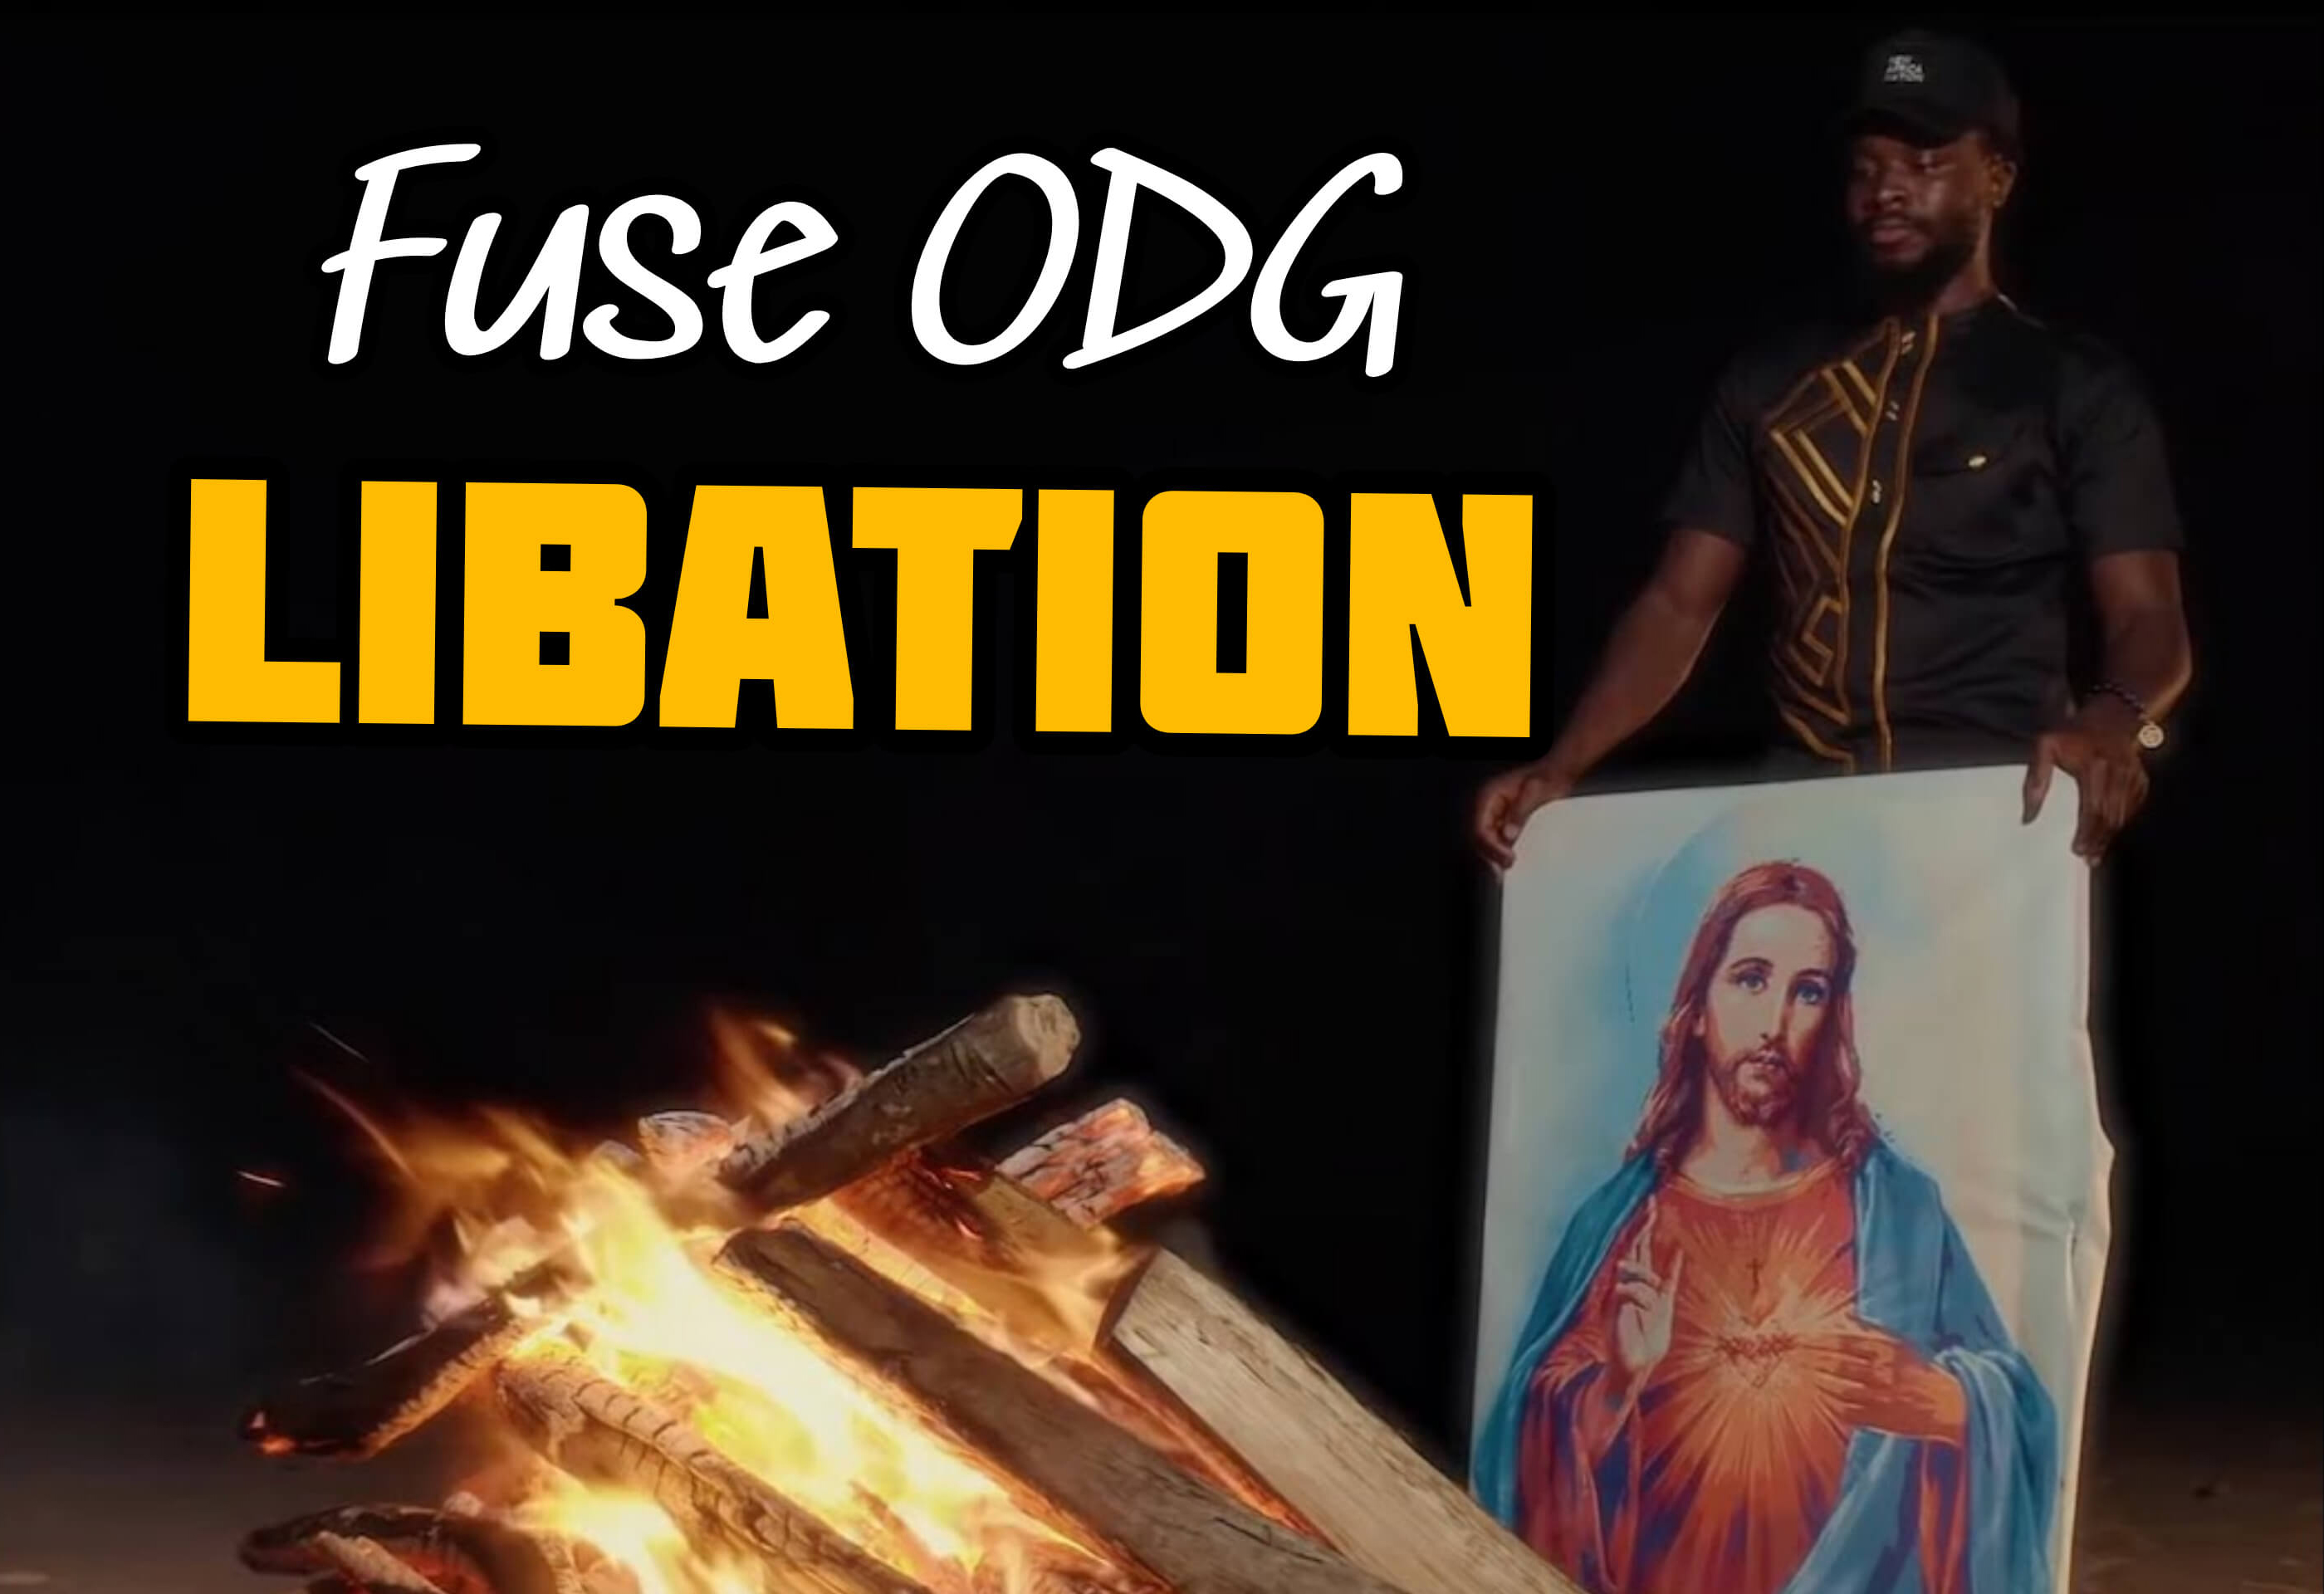 Fuse ODG - Libation